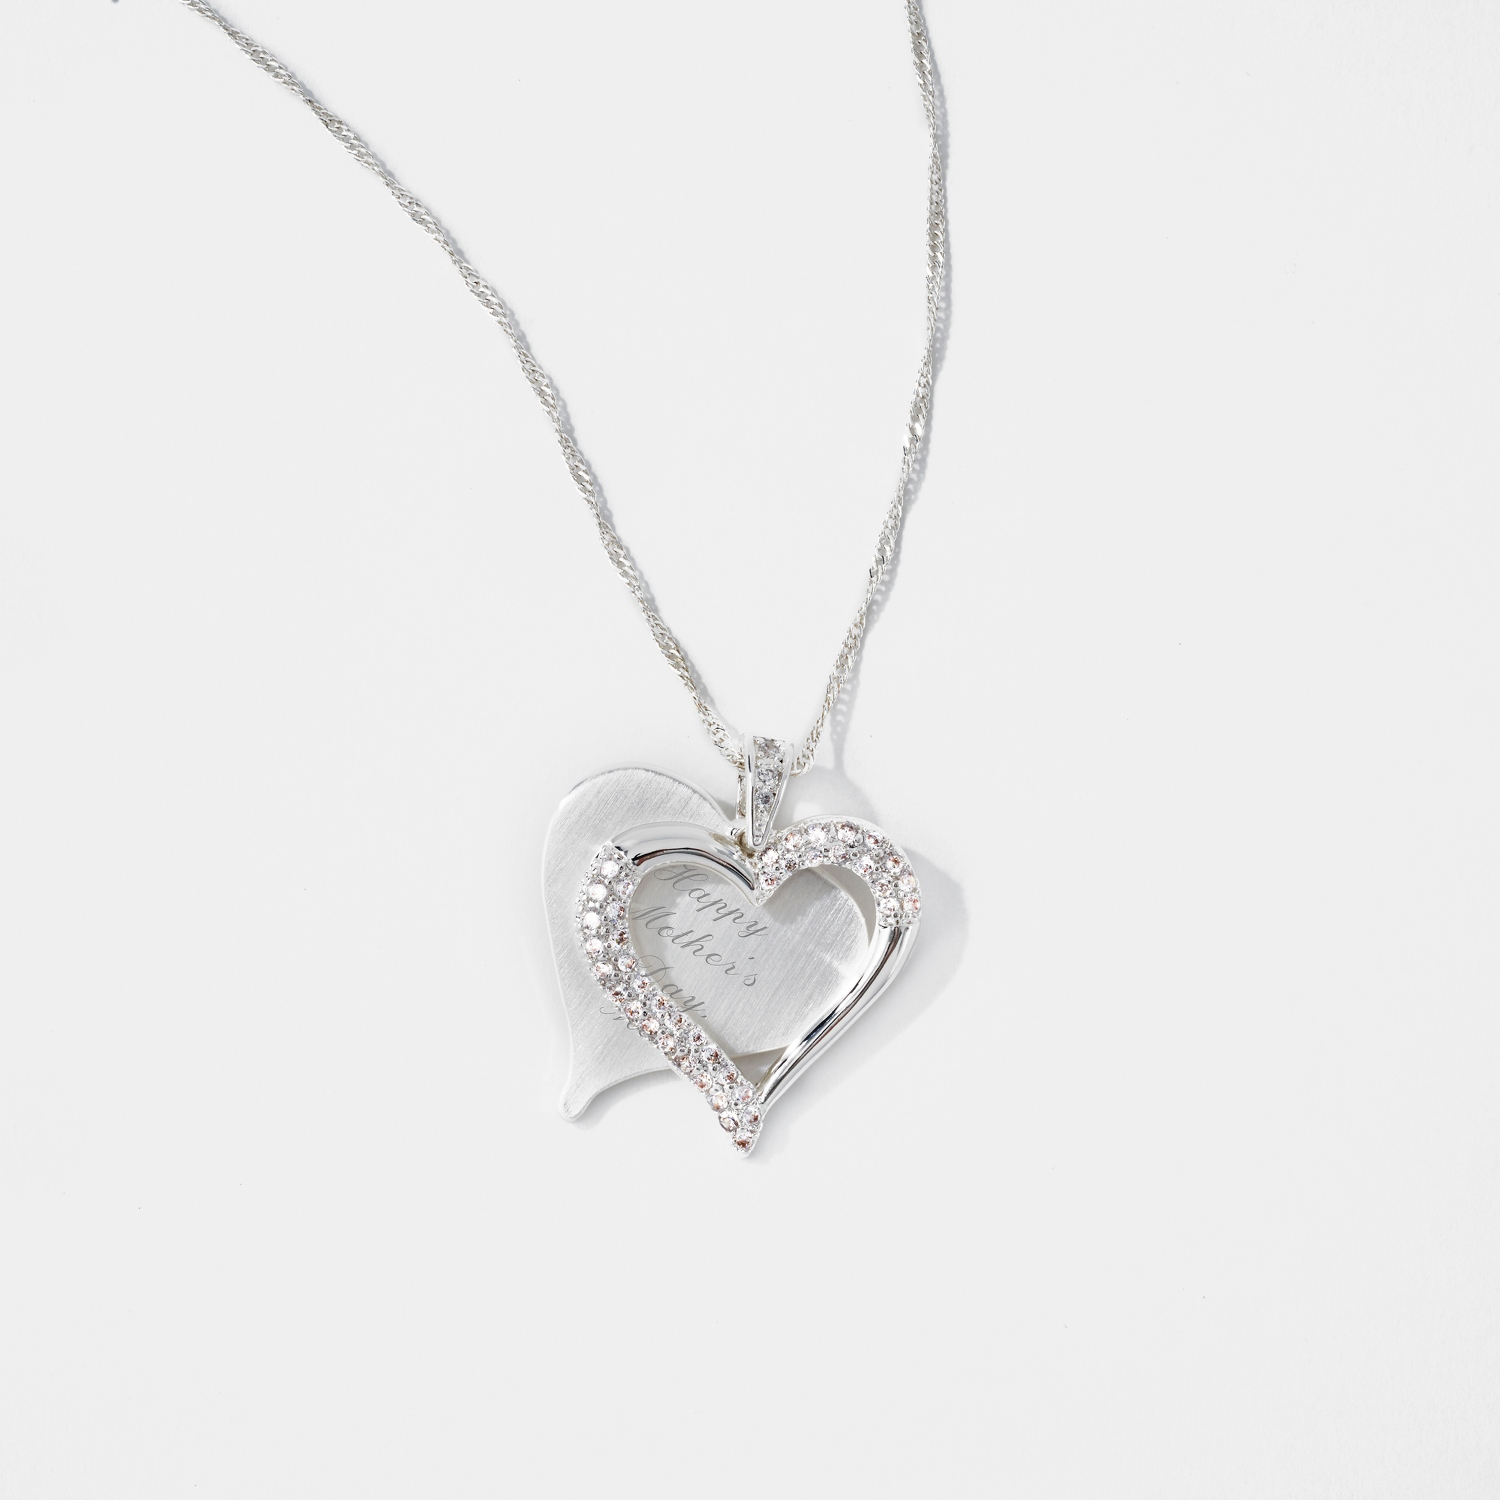 the necklaces peretti ed necklace rose by in perettidiamonds yard heart tiffany jewelry diamonds co elsa pendants gold